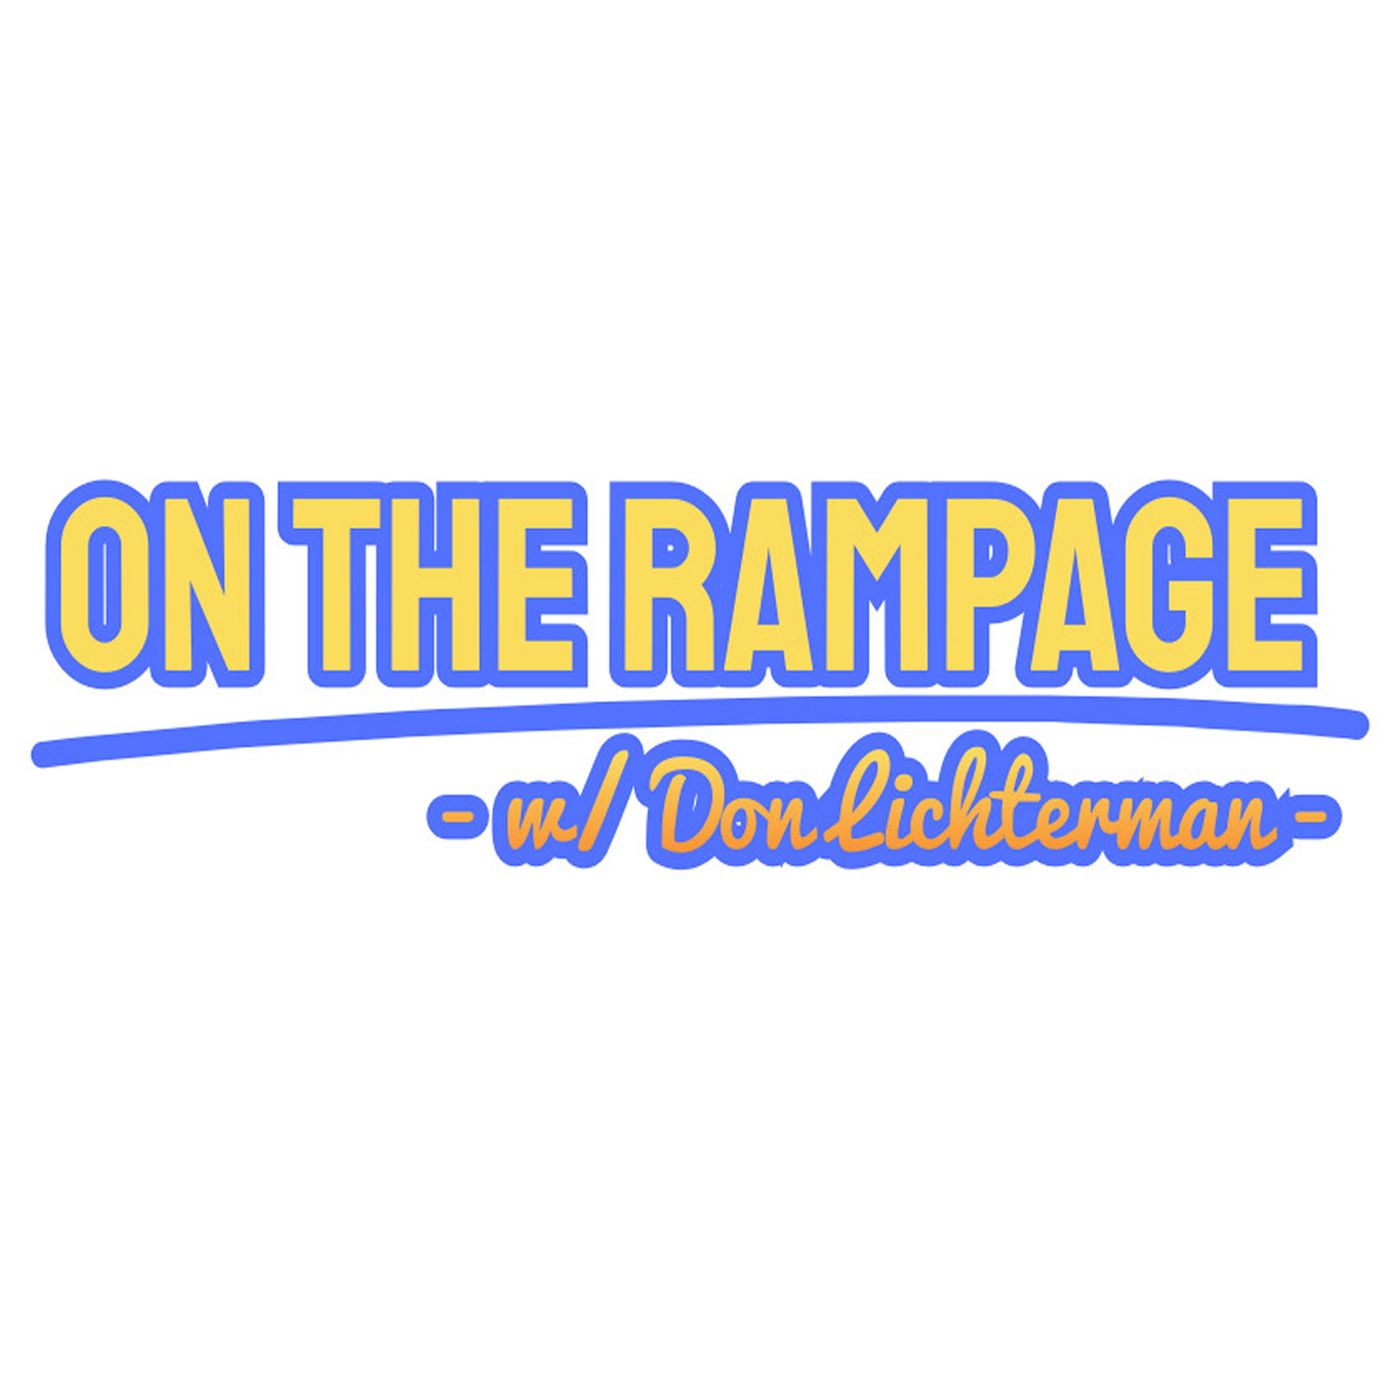 On The Rampage w/ Don Lichterman, Phish & NYE, Cocaine Decisions, Aesha & Dolphin Hunting Season!